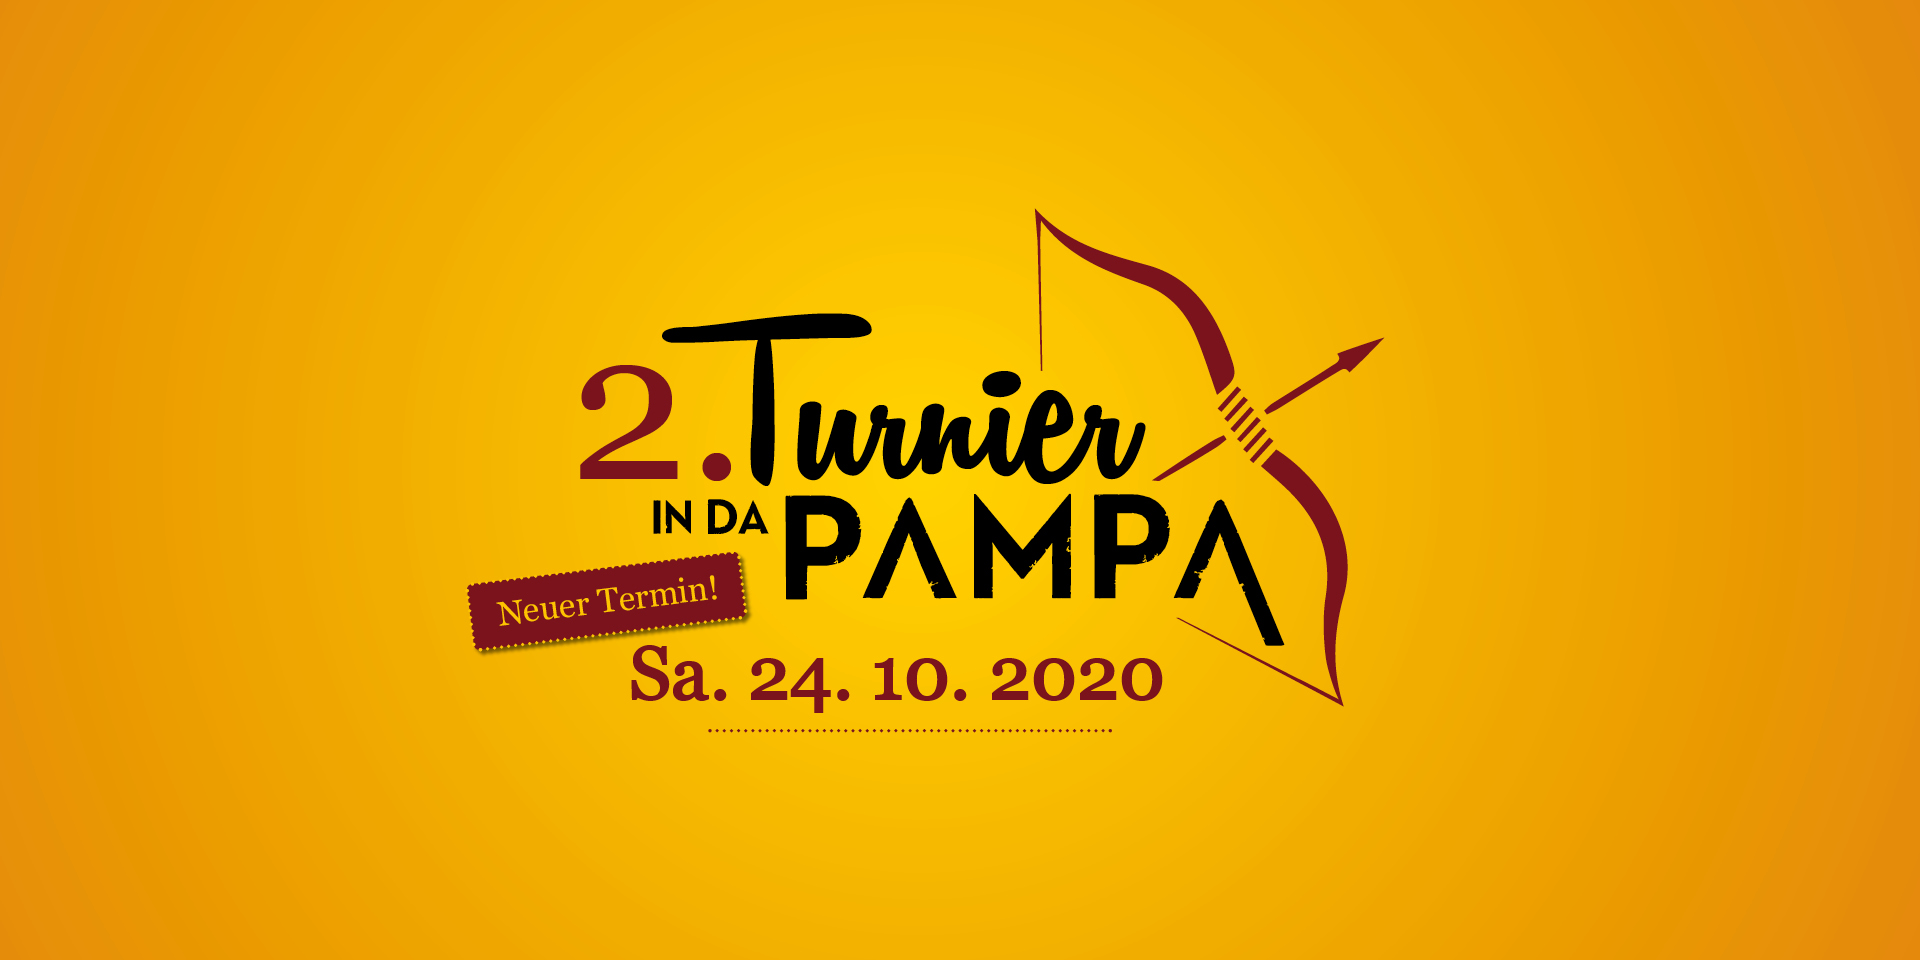 2. Turnier in da Pampa